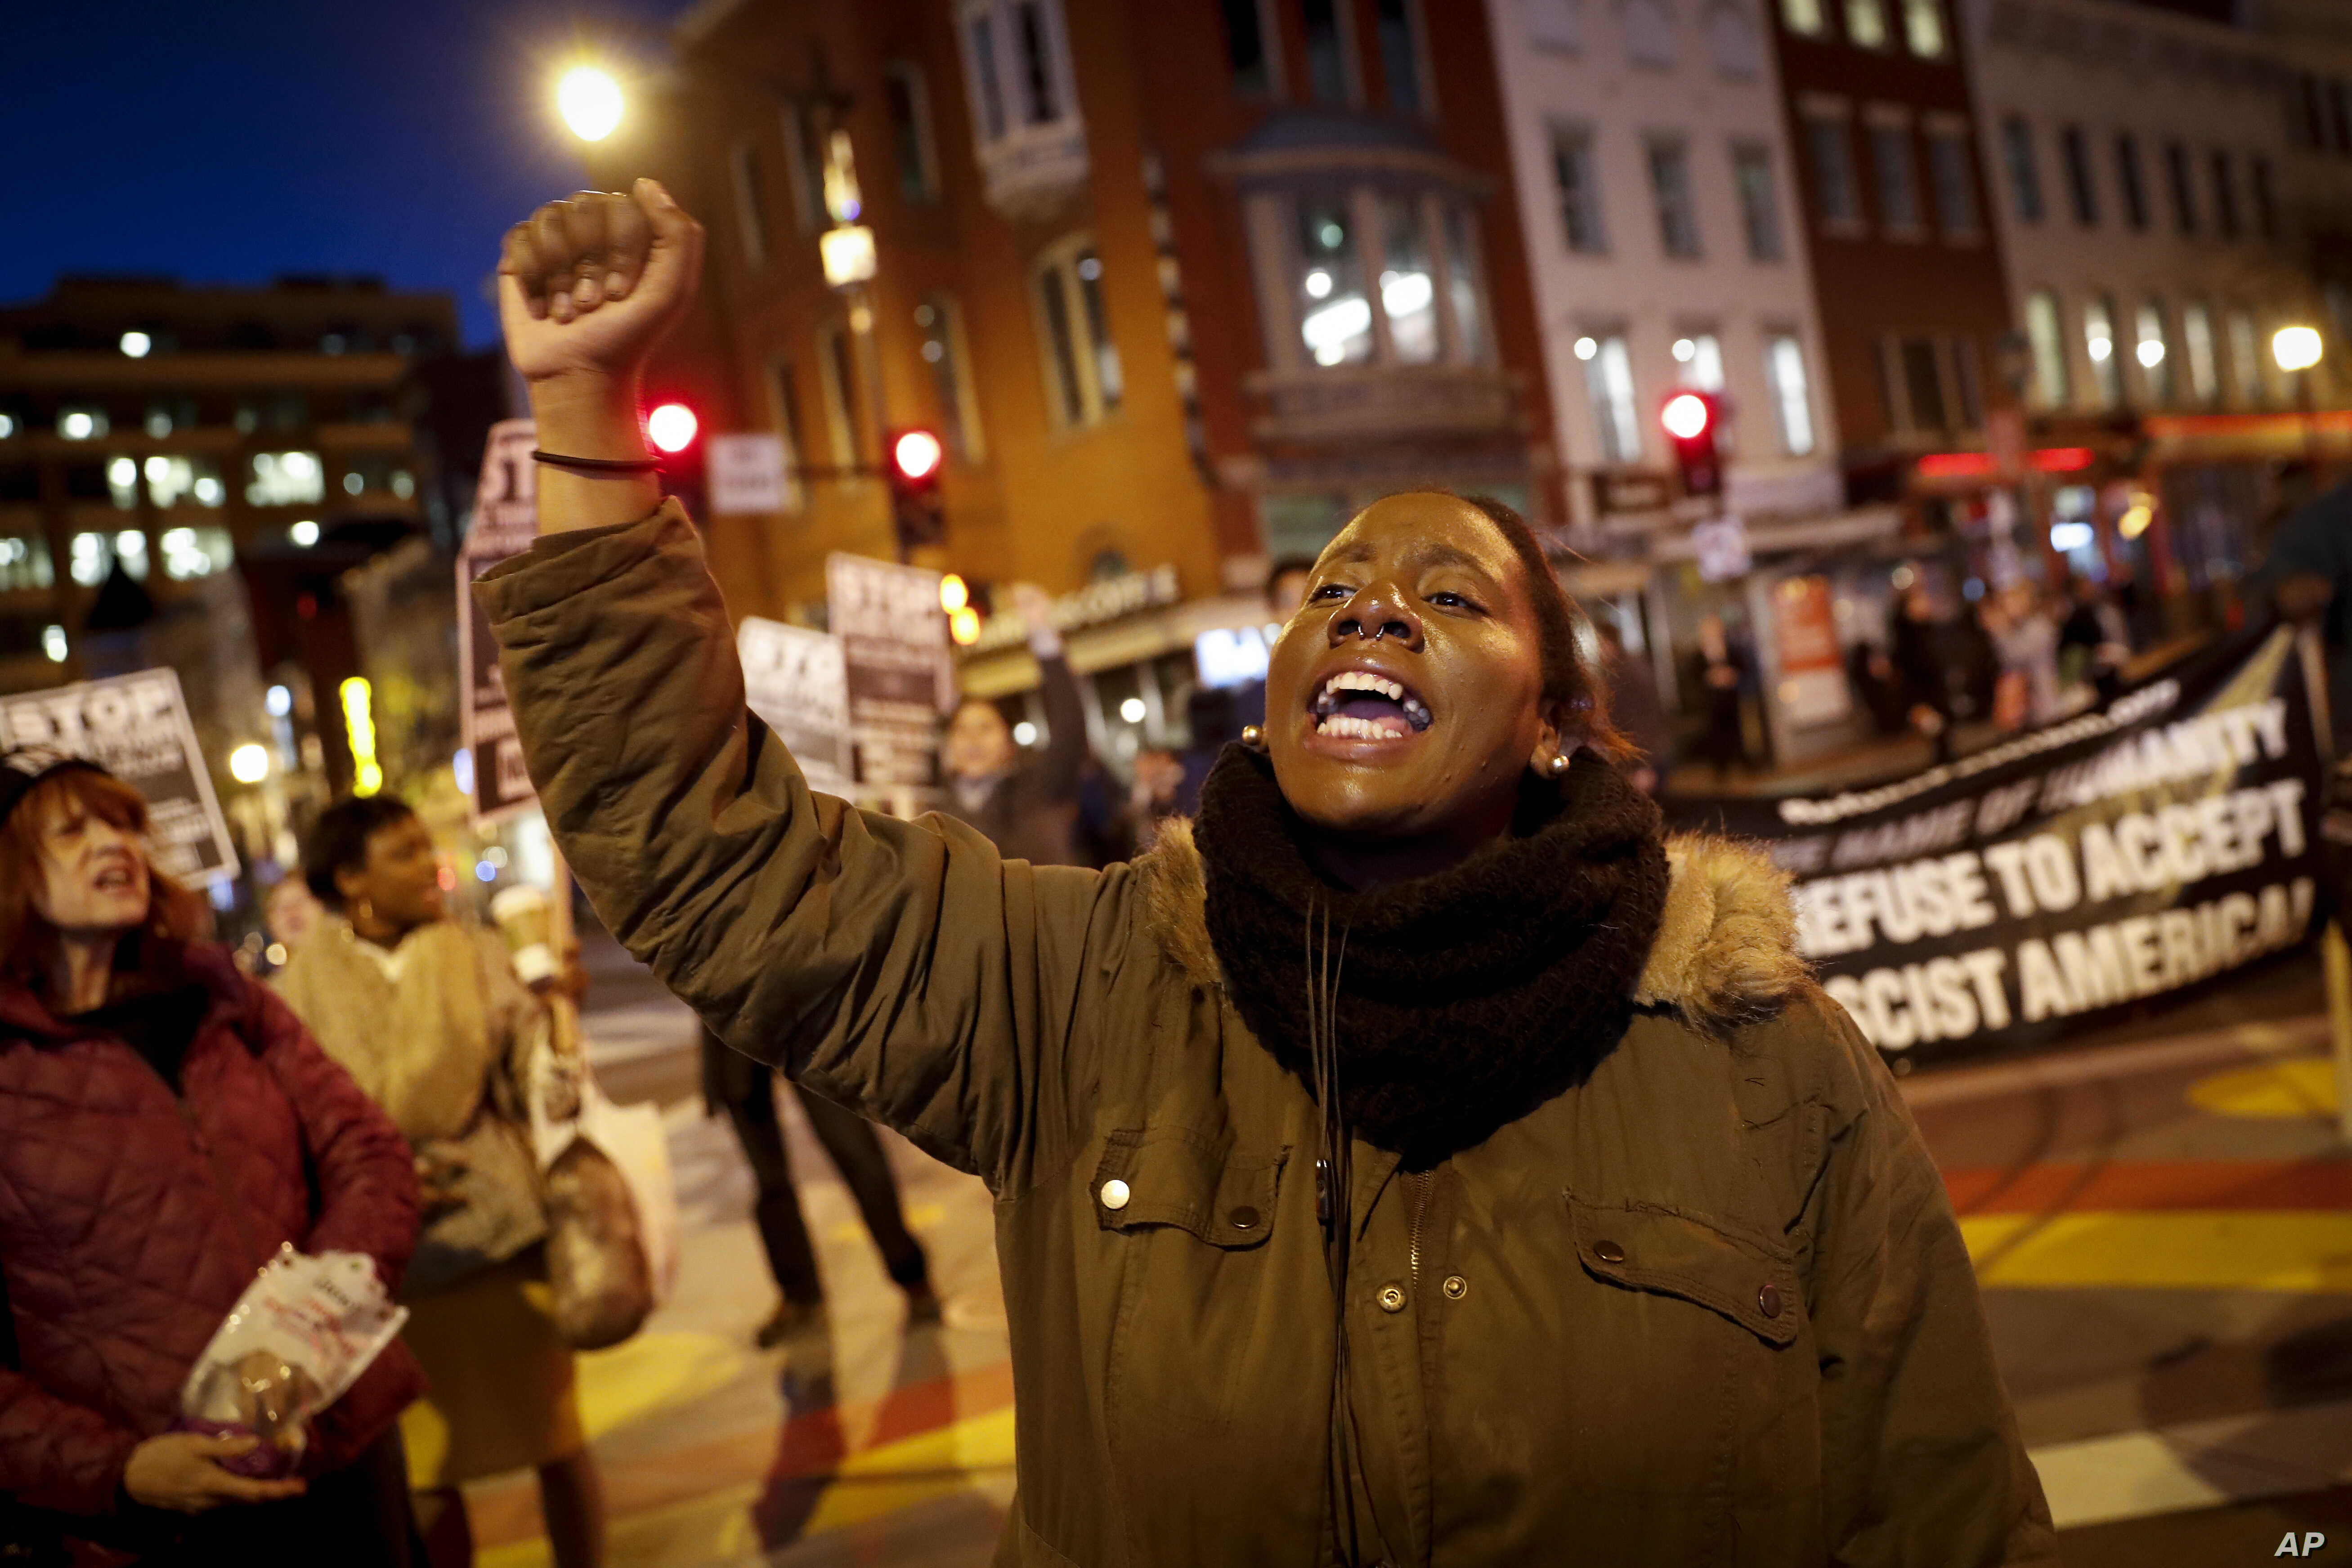 A protester yells as others gather for a march on the Capitol Building, Jan. 18, 2017, in Washington.